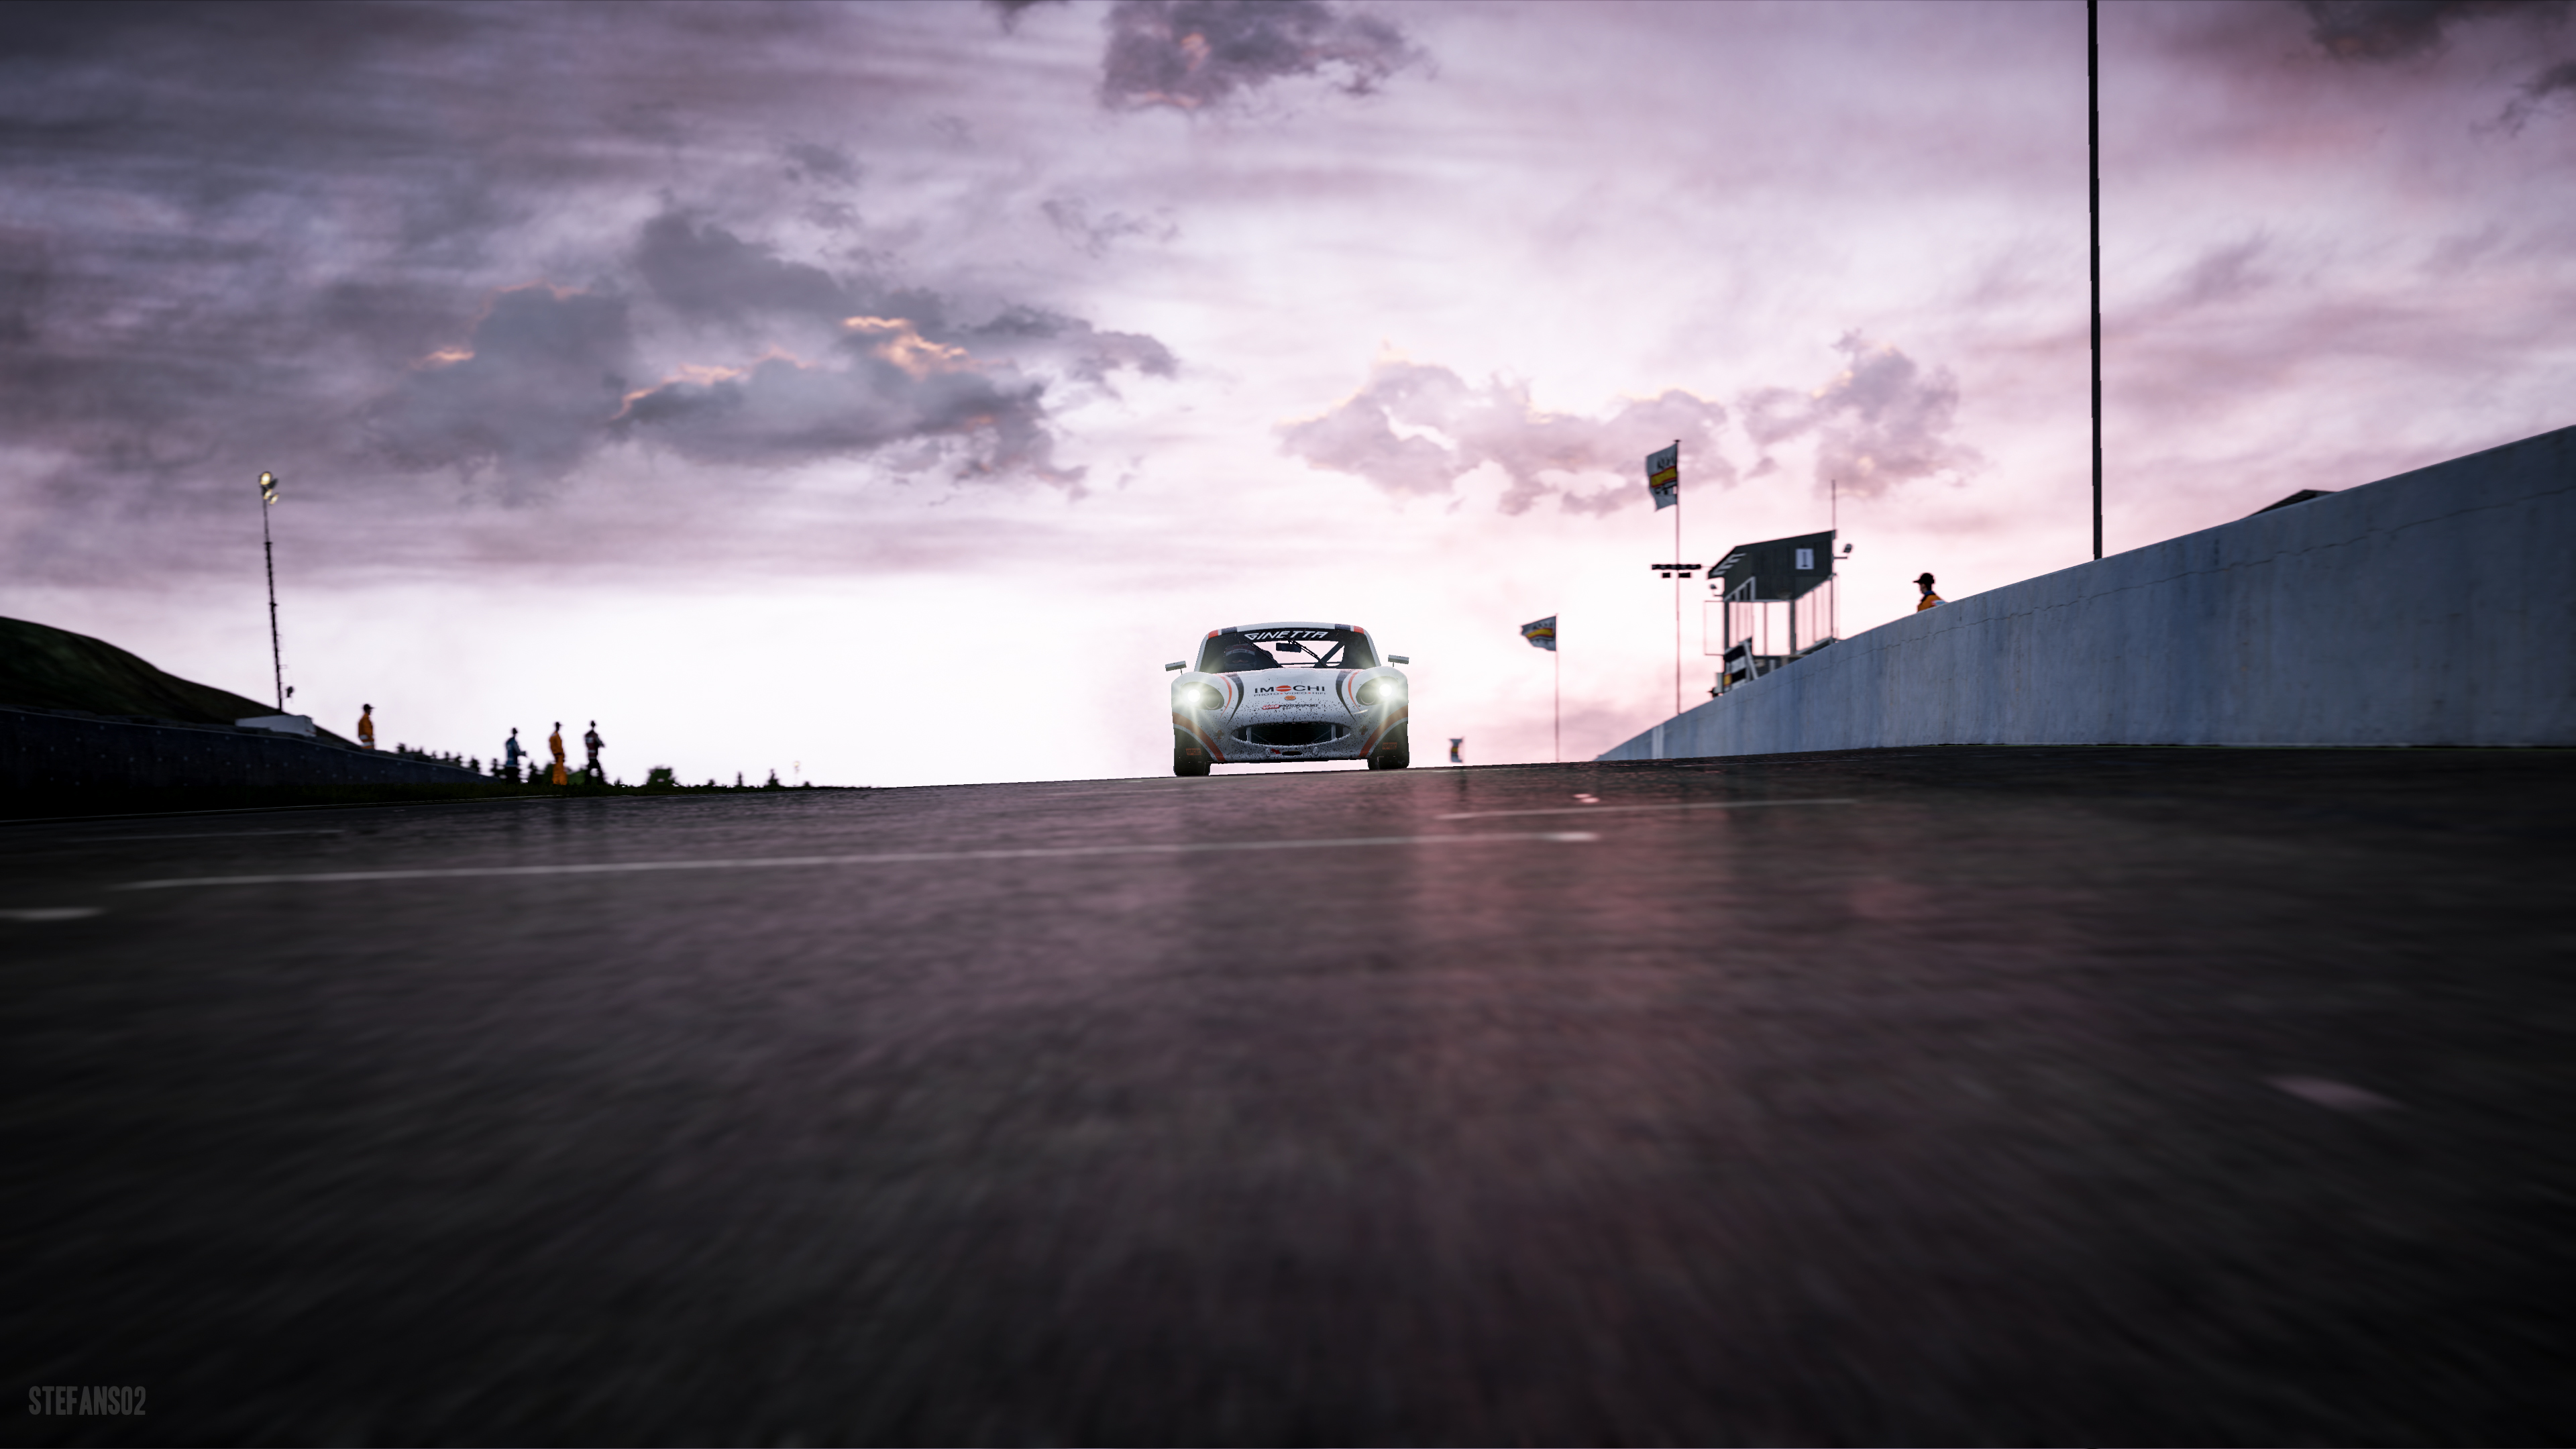 Project cars 2 over the bump 4k ultra hd wallpaper - Project cars 4k wallpaper ...